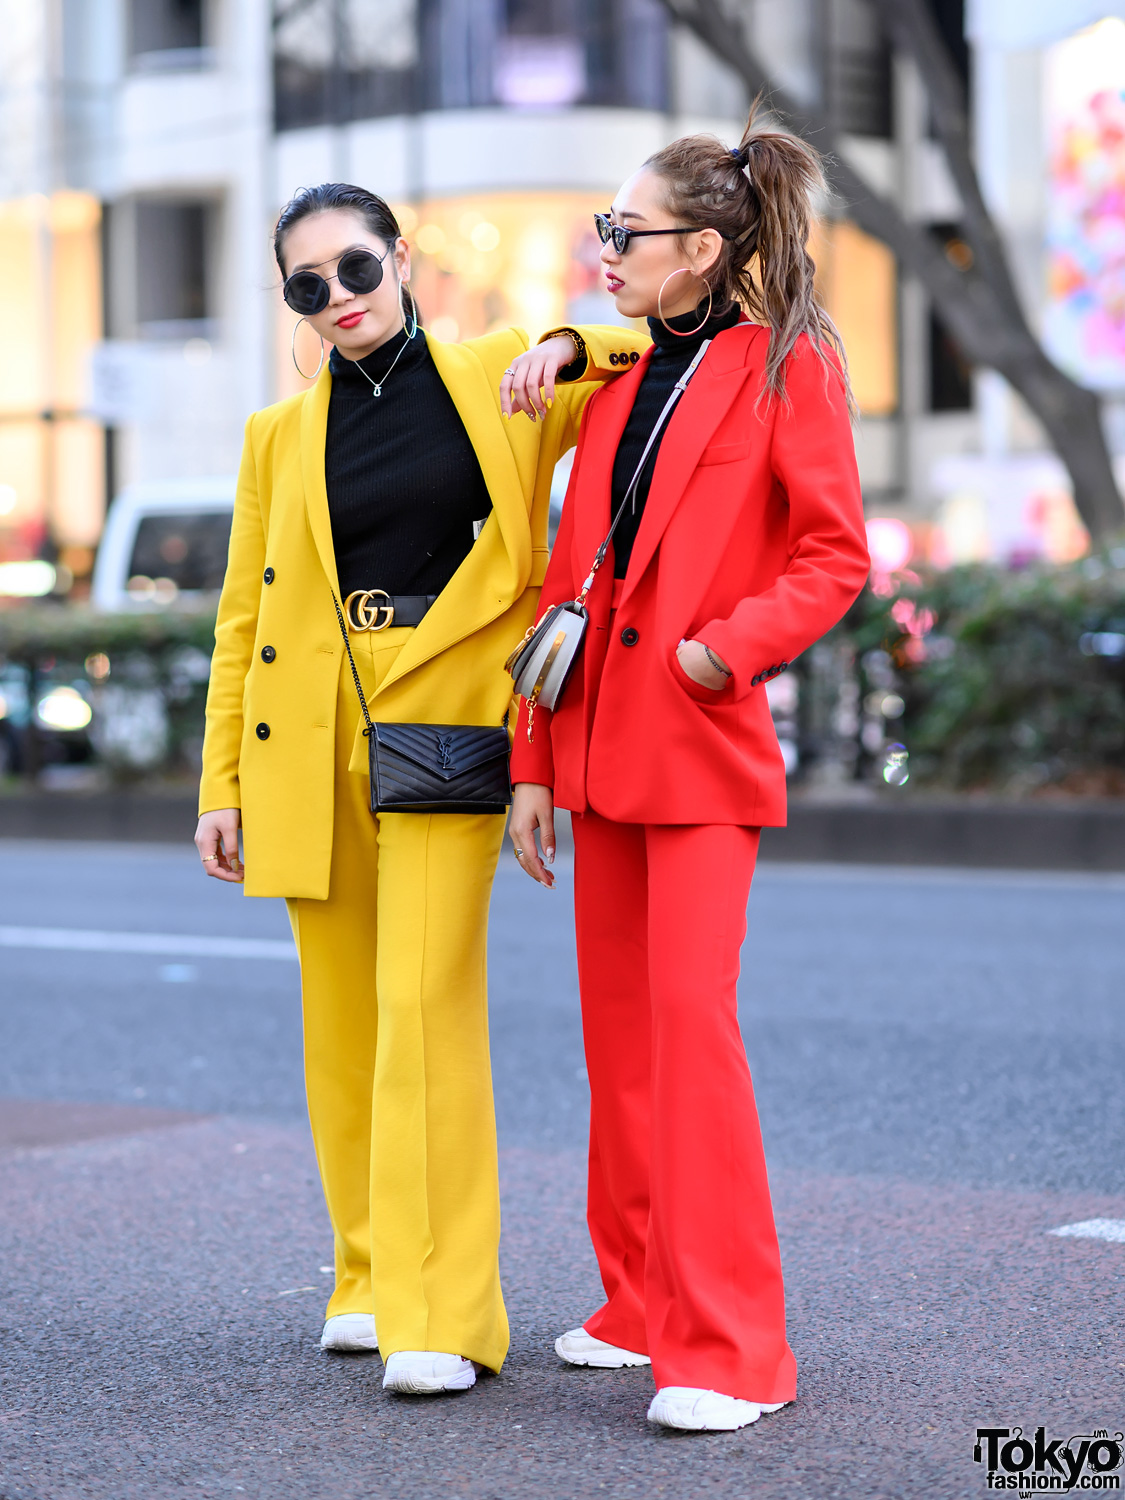 Colorful Women's Suits Styles in Harajuku w/ Zara, UNIQLO, YSL, Fendi, Gucci, Chanel, Chloe & Adidas